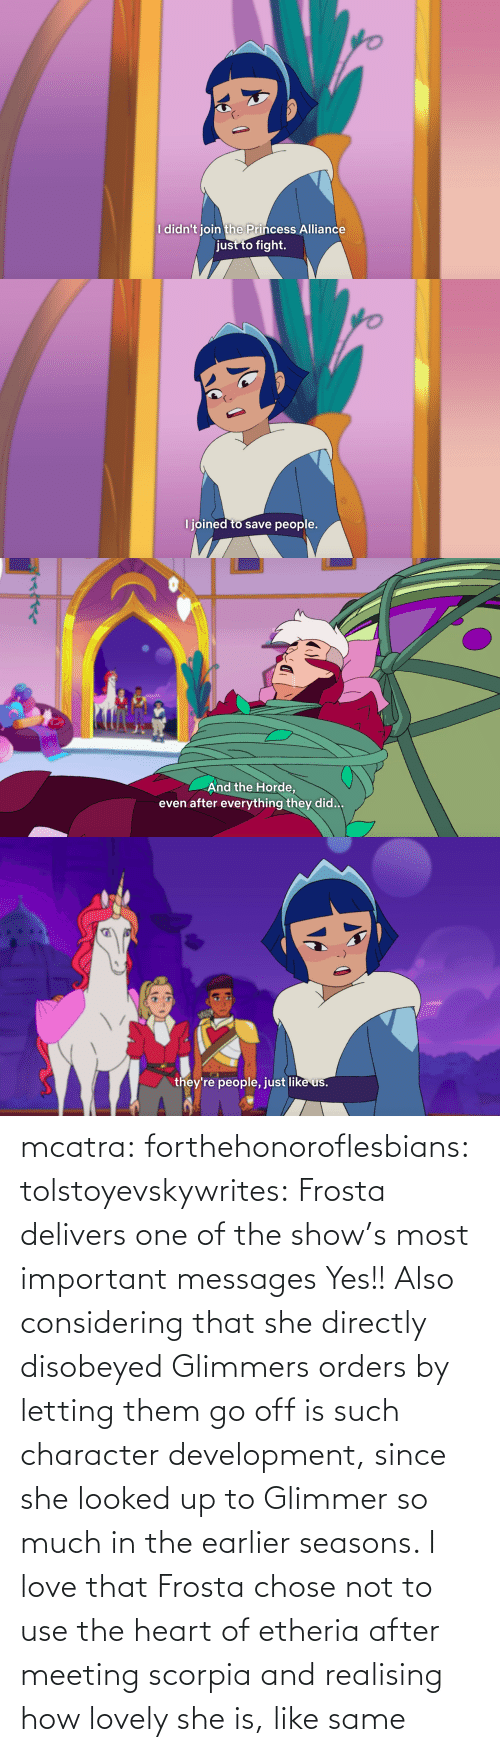 development: mcatra: forthehonoroflesbians:   tolstoyevskywrites:  Frosta delivers one of the show's most important messages  Yes!! Also considering that she directly disobeyed Glimmers orders by letting them go off is such character development, since she looked up to Glimmer so much in the earlier seasons.    I love that Frosta chose not to use the heart of etheria after meeting scorpia and realising how lovely she is, like same